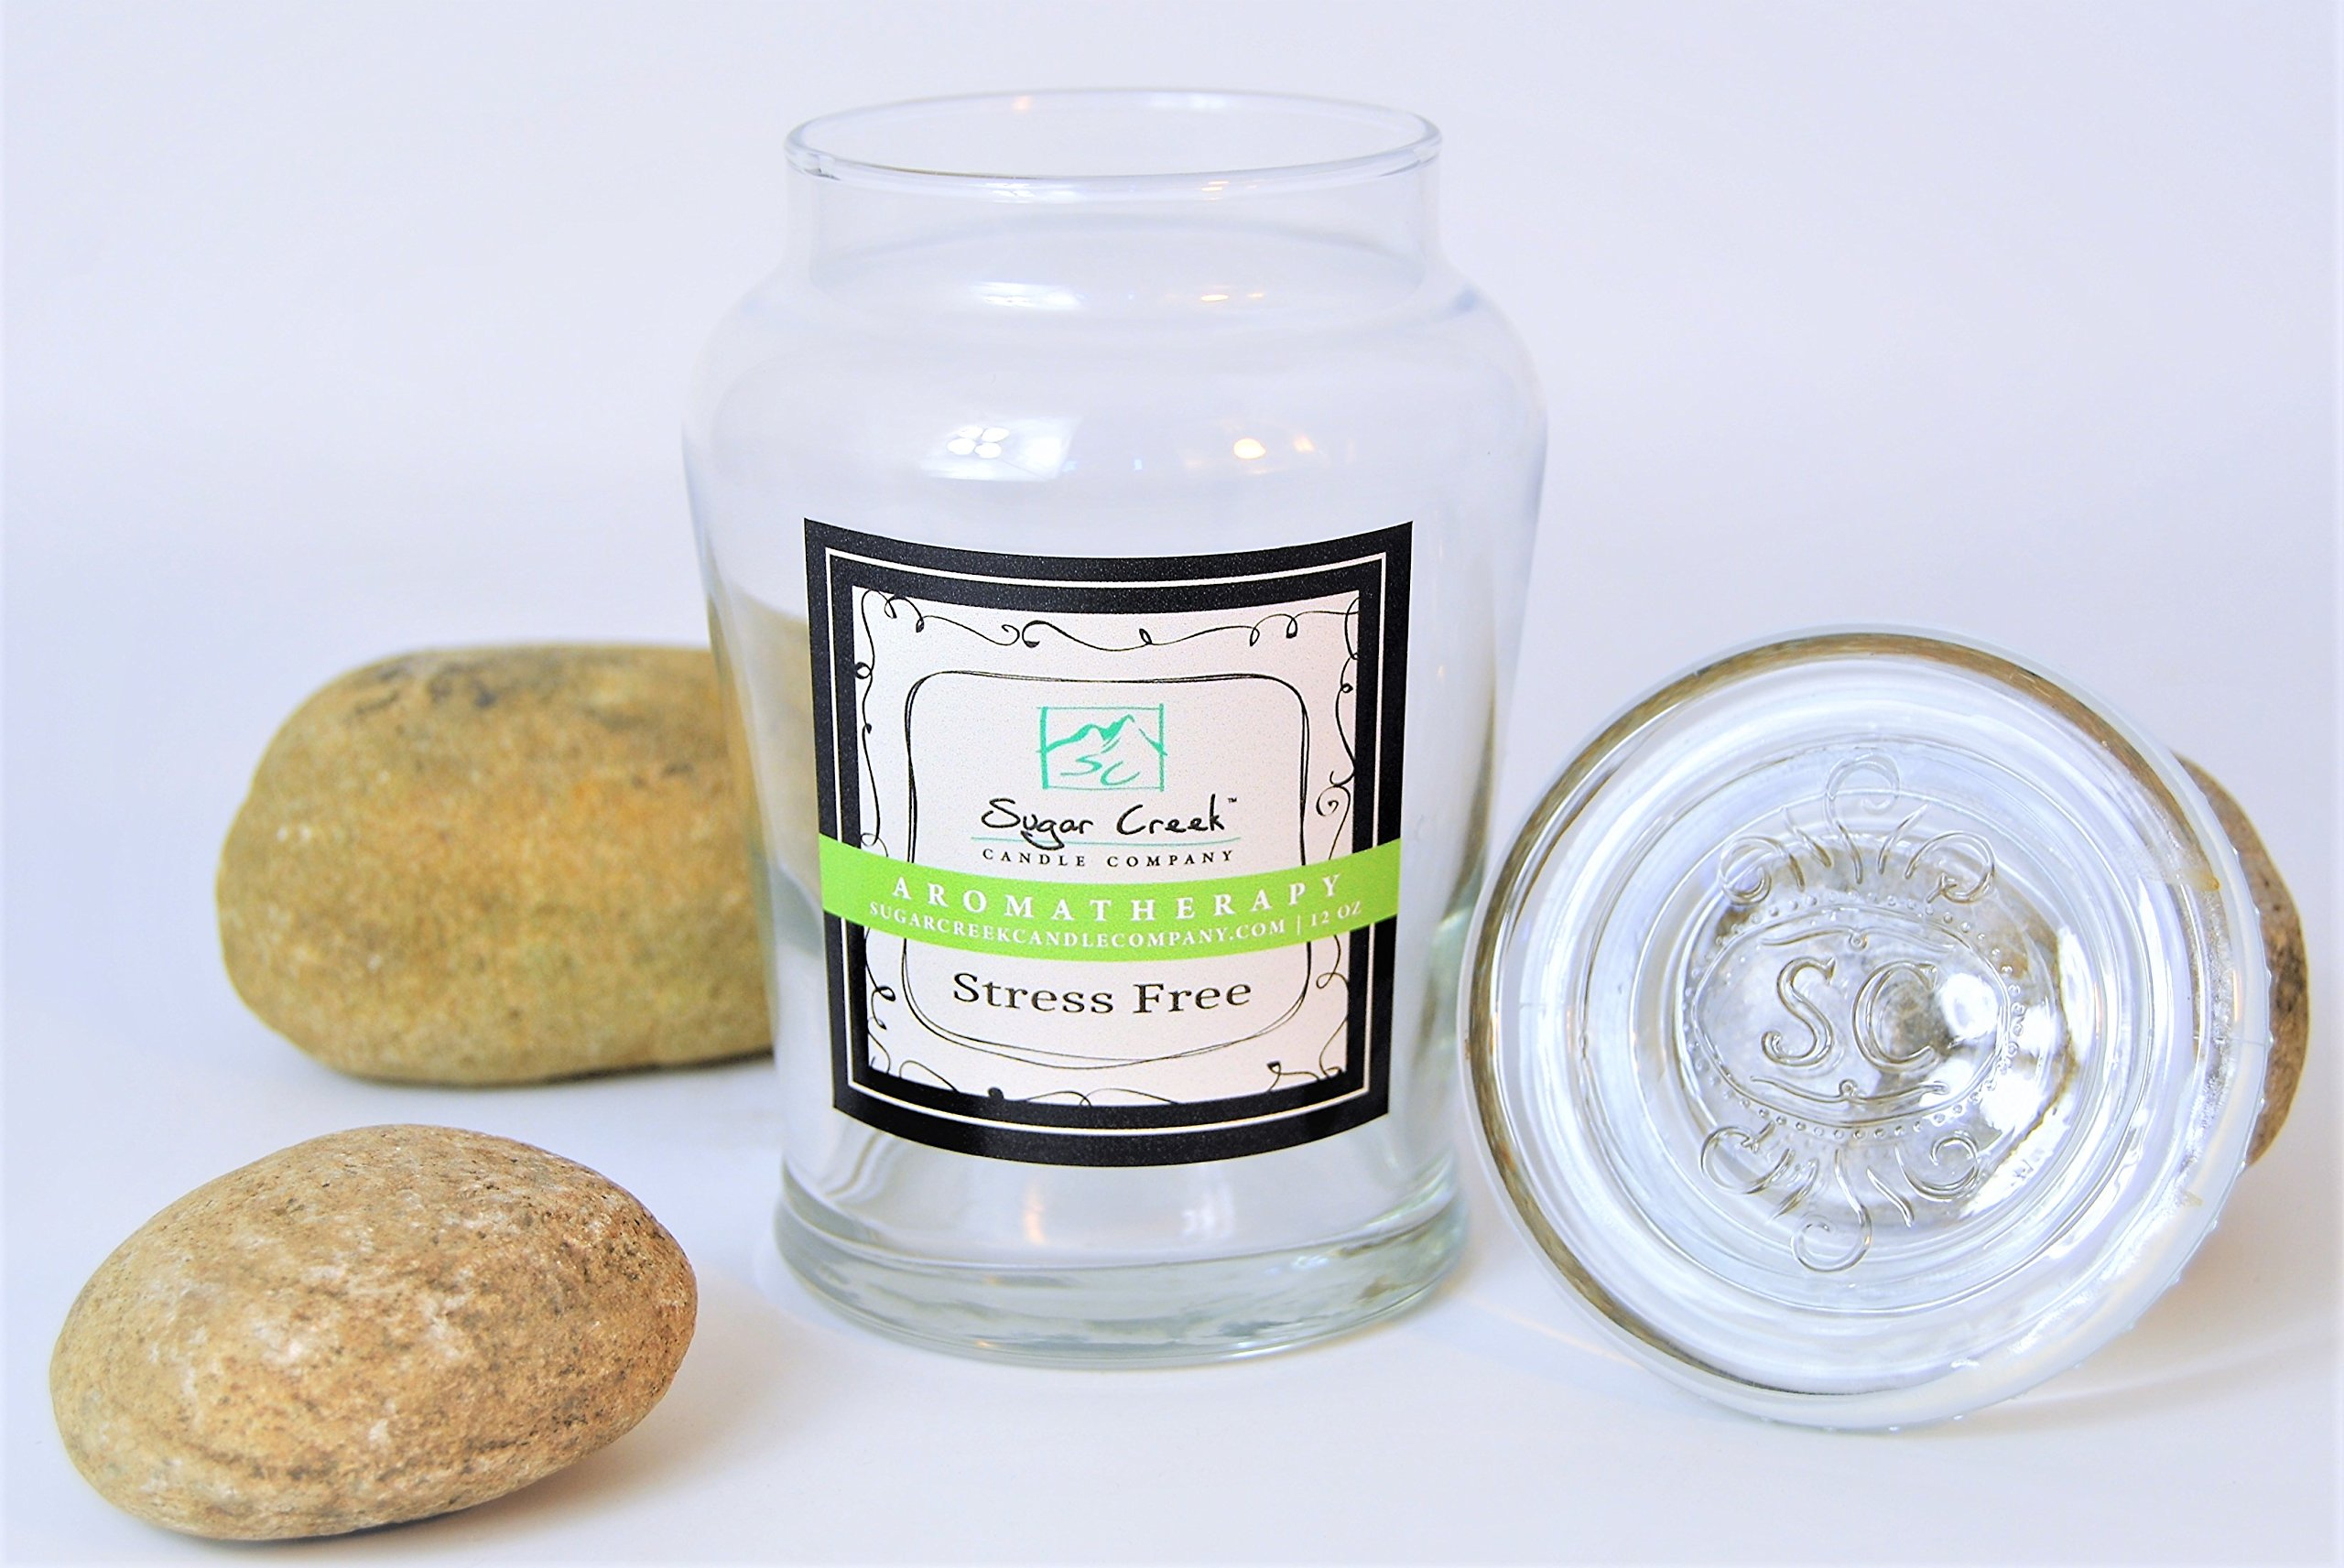 Aromatherapy Soy Wax Scented Candle - Stress Relief (Eucalyptus Mint) | Non Toxic - Essential Oils | 100 Hours Burn Time (16 ounces Limited Edition Glass) | Sugar Creek Candles by Sugar Creek Candles (Image #2)